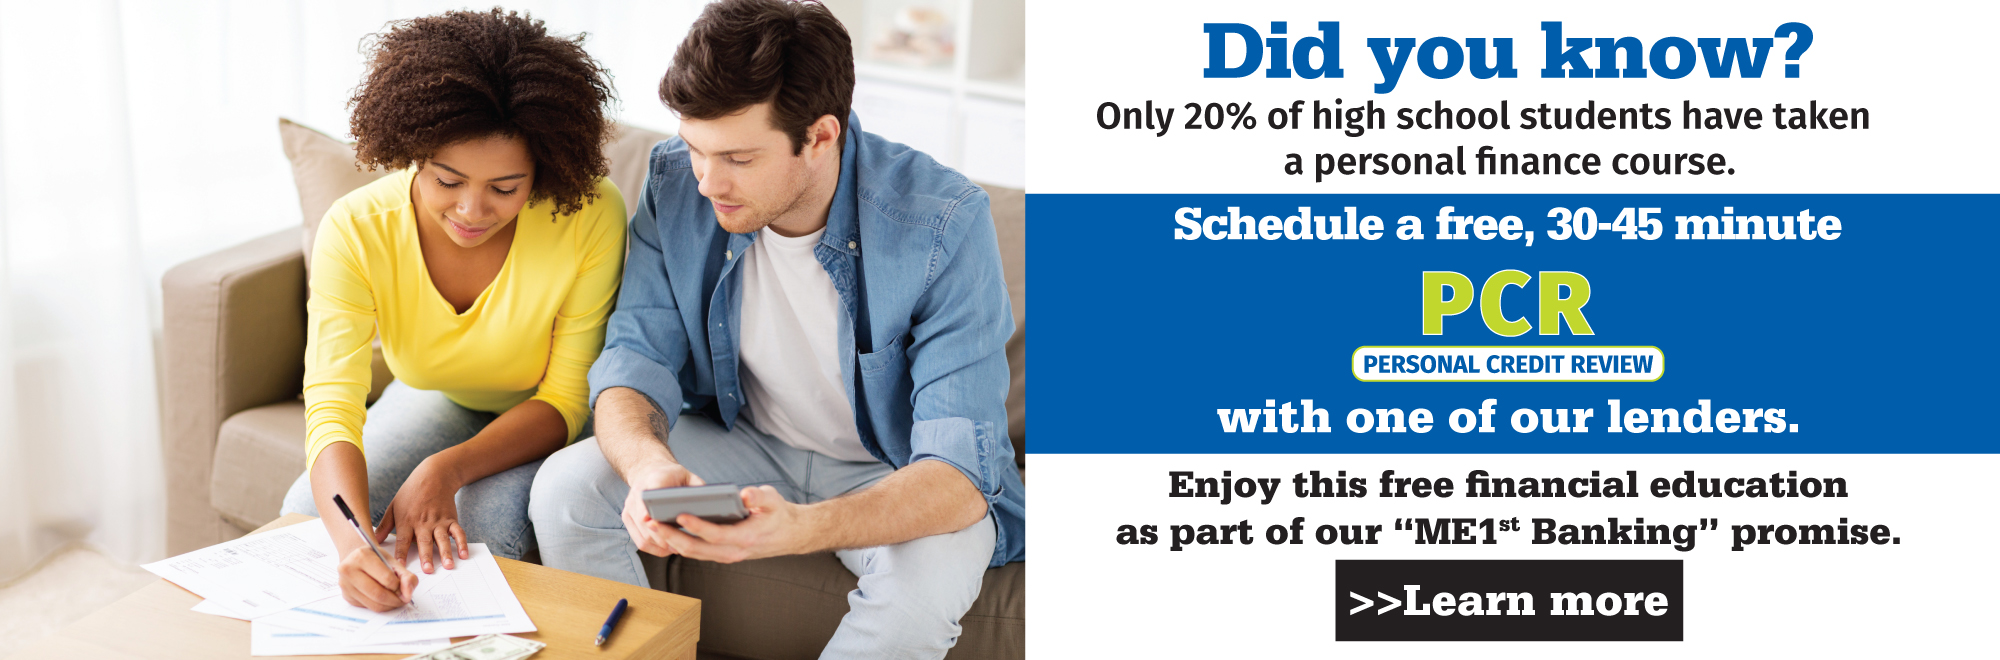 Schedule a free personal credit review.